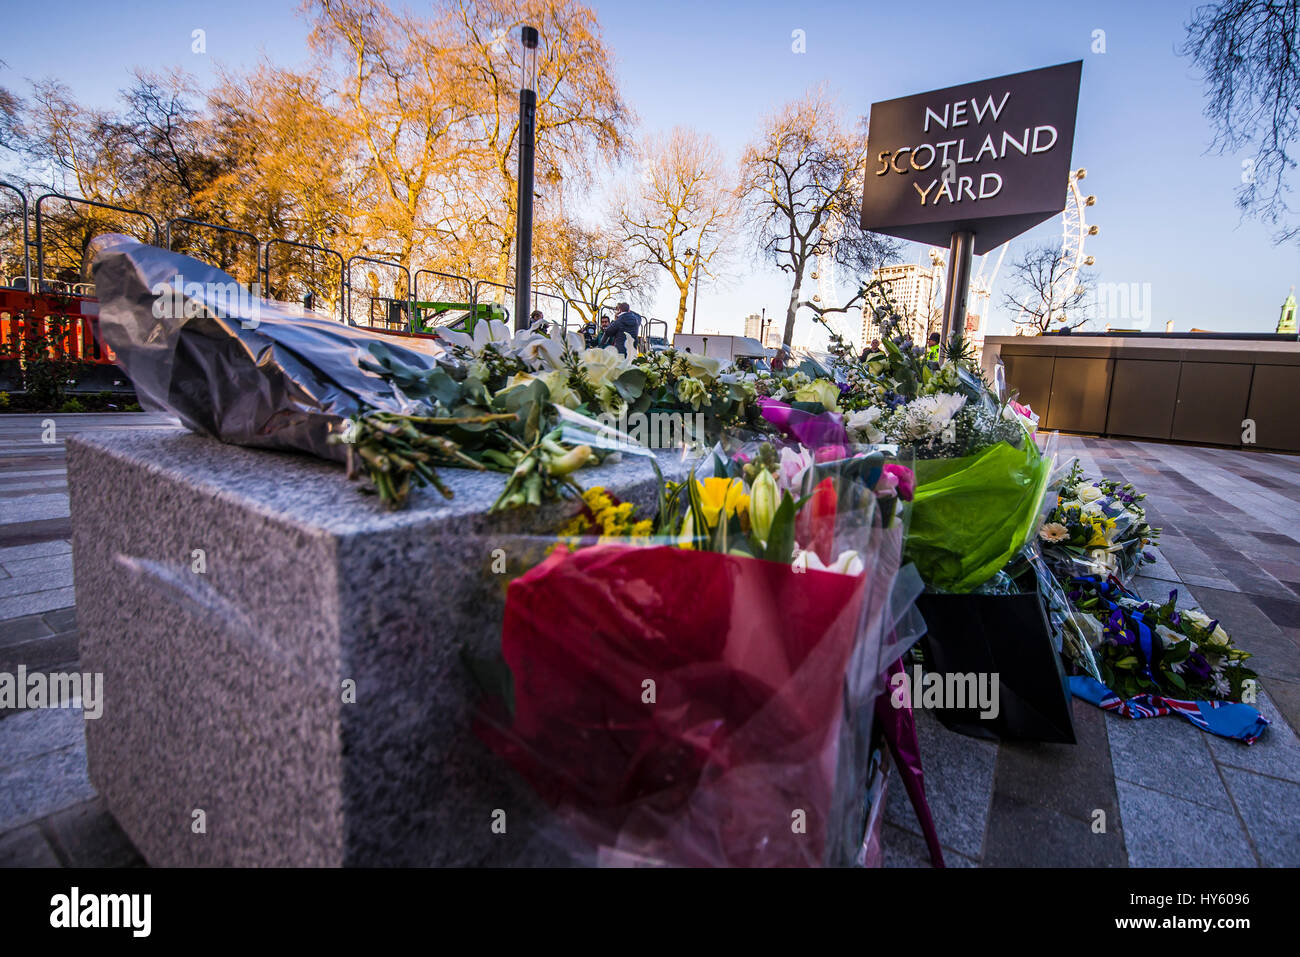 Floral tributes outside New Scotland Yard, London, following the terrorist action and death of PC Keith Palmer. Stock Photo